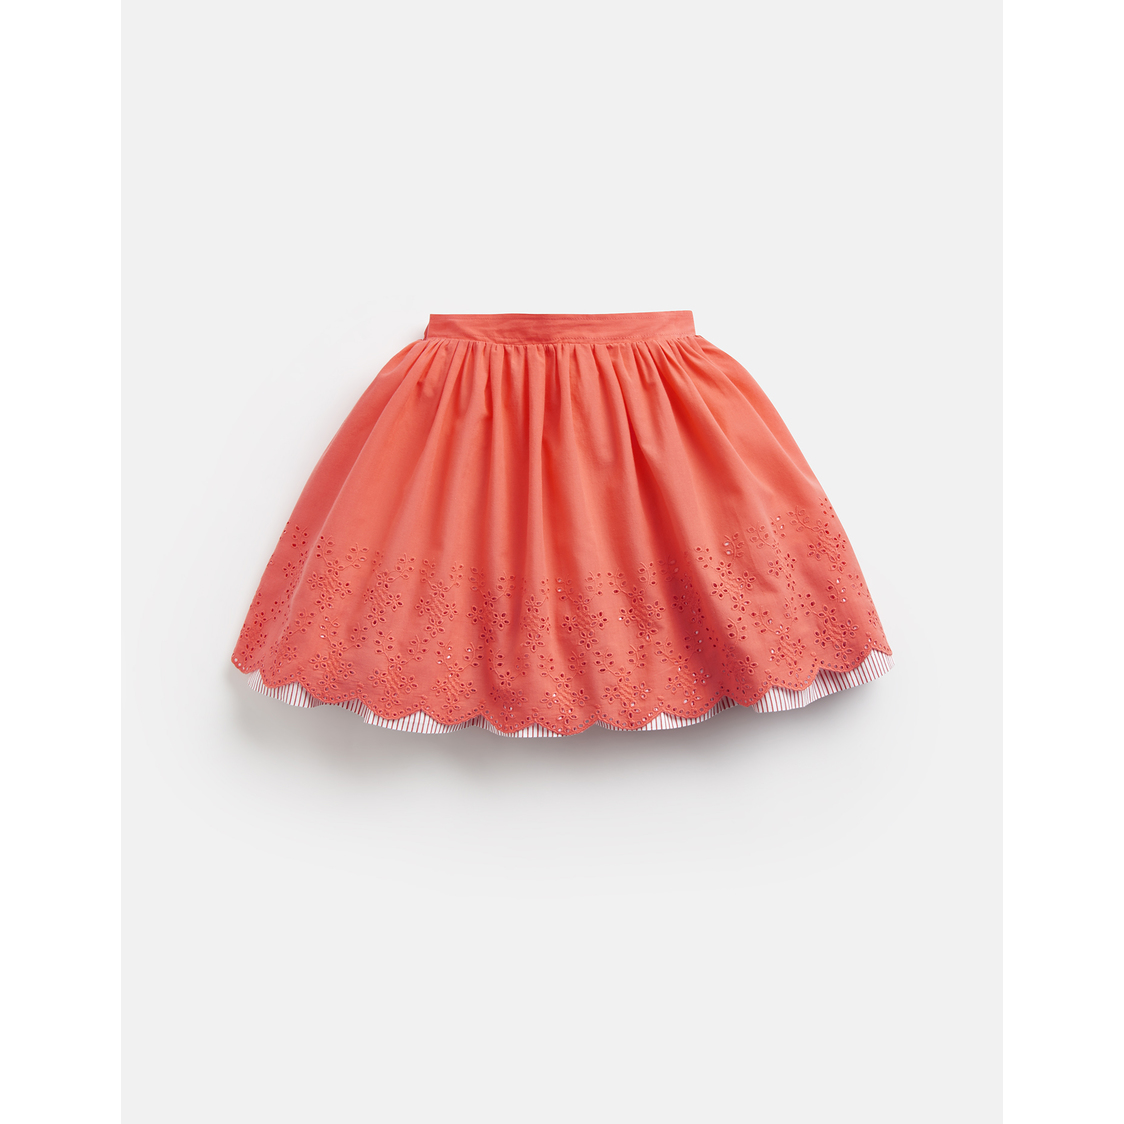 Myla Broderie Woven Skirt 3-12 Yr Bright Coral